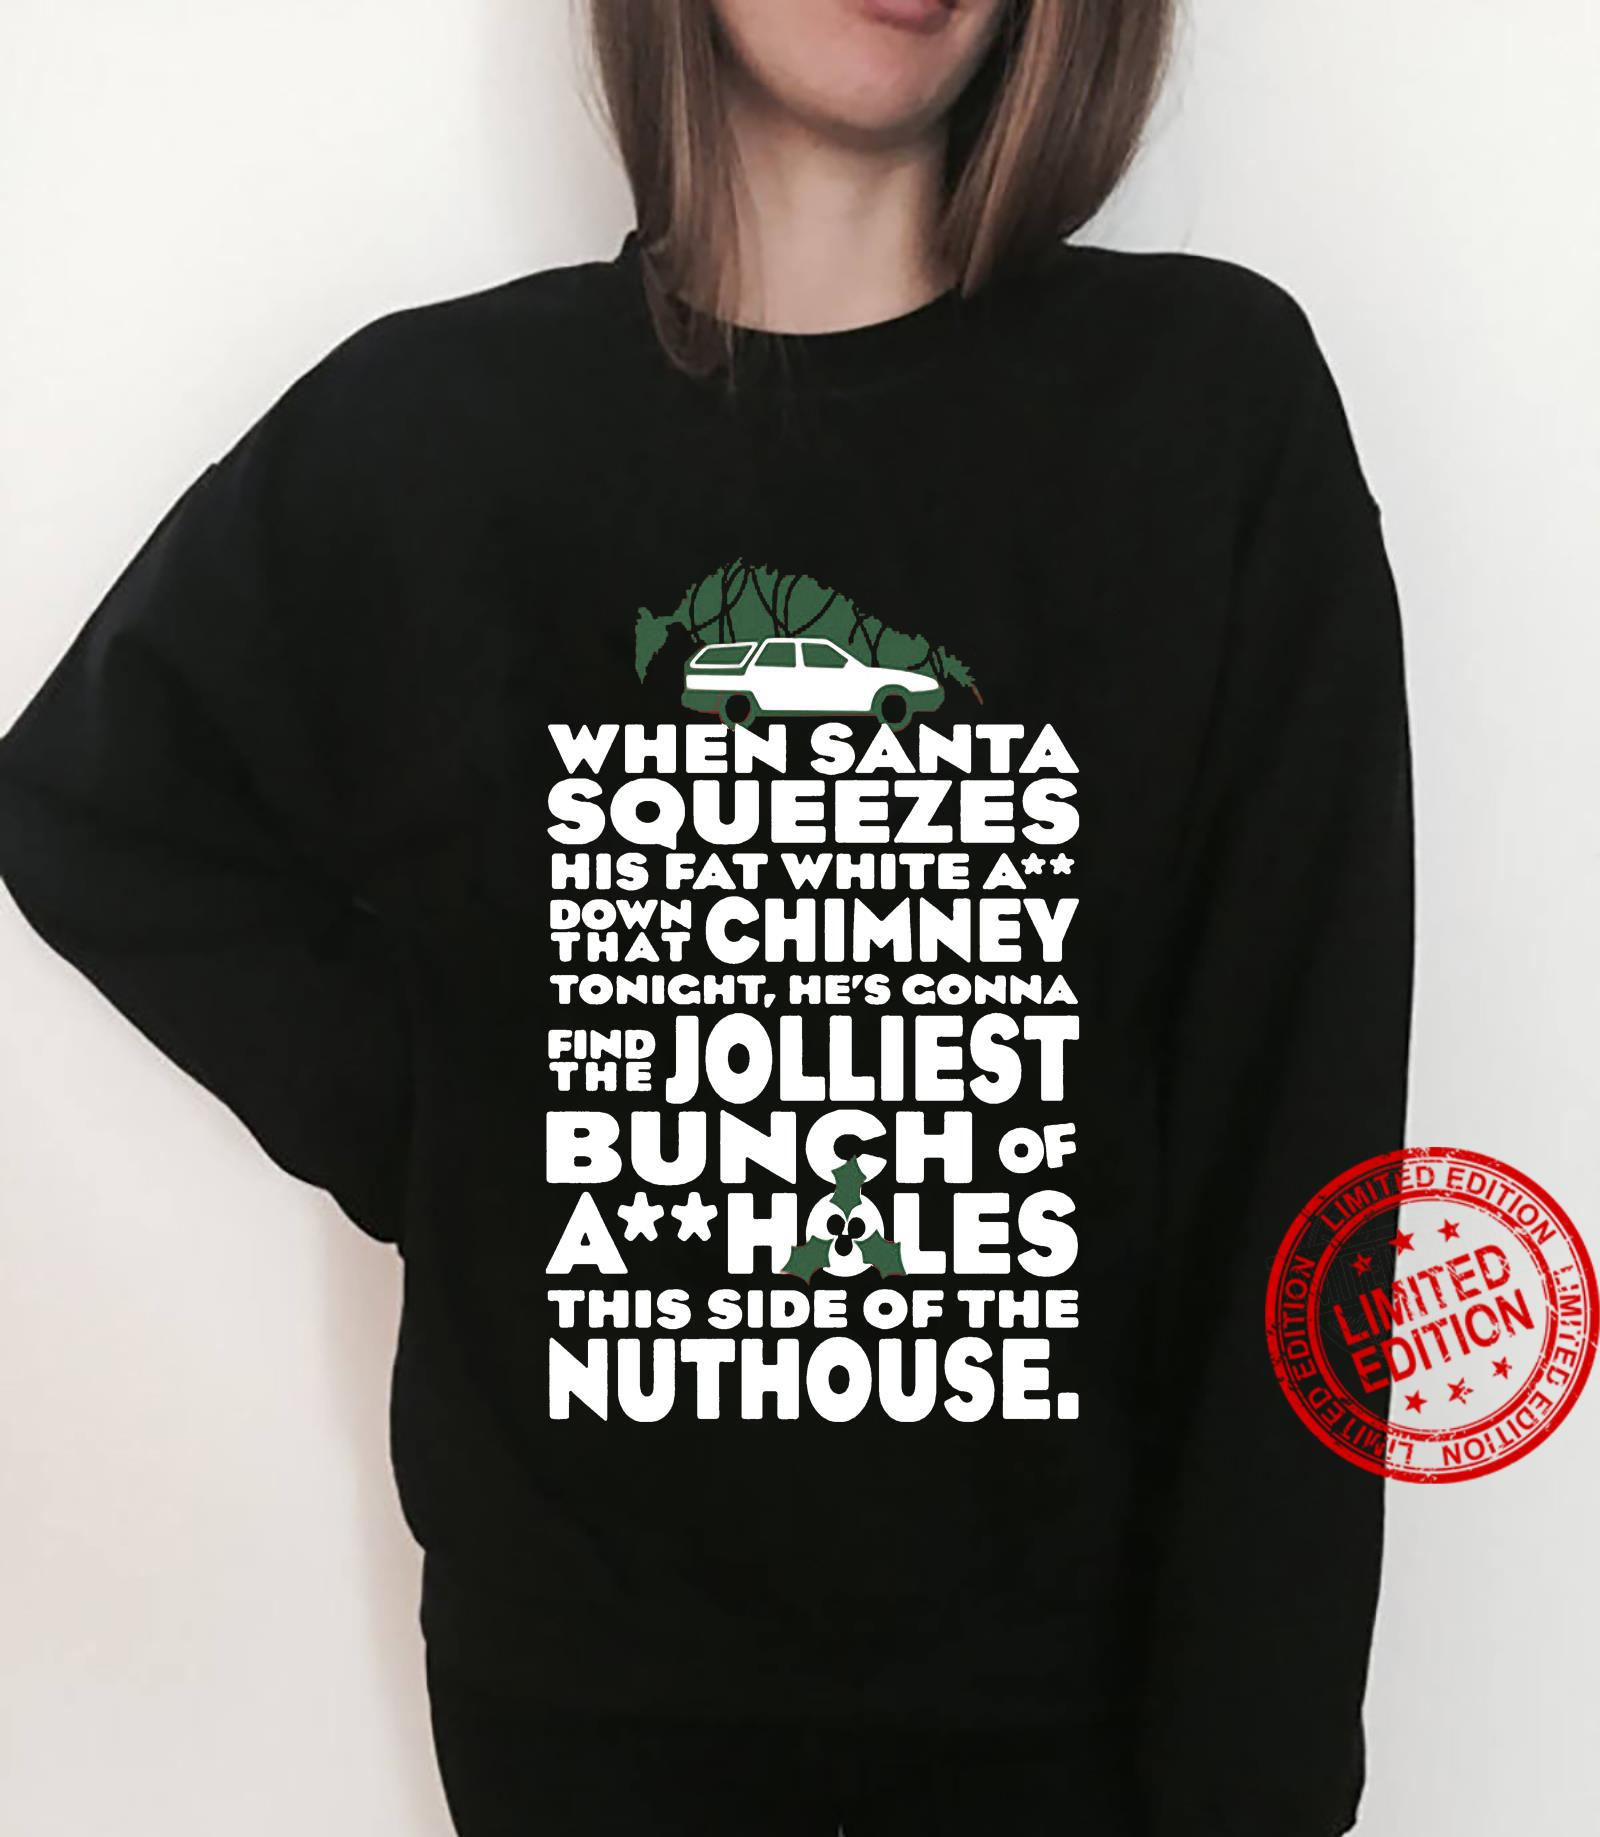 When Santa Squeezes His Fat White A Down That Chimney Tonight, He's Gonna Find The Jolliest Bunch Of Ass Holes Women T-Shirt sweater